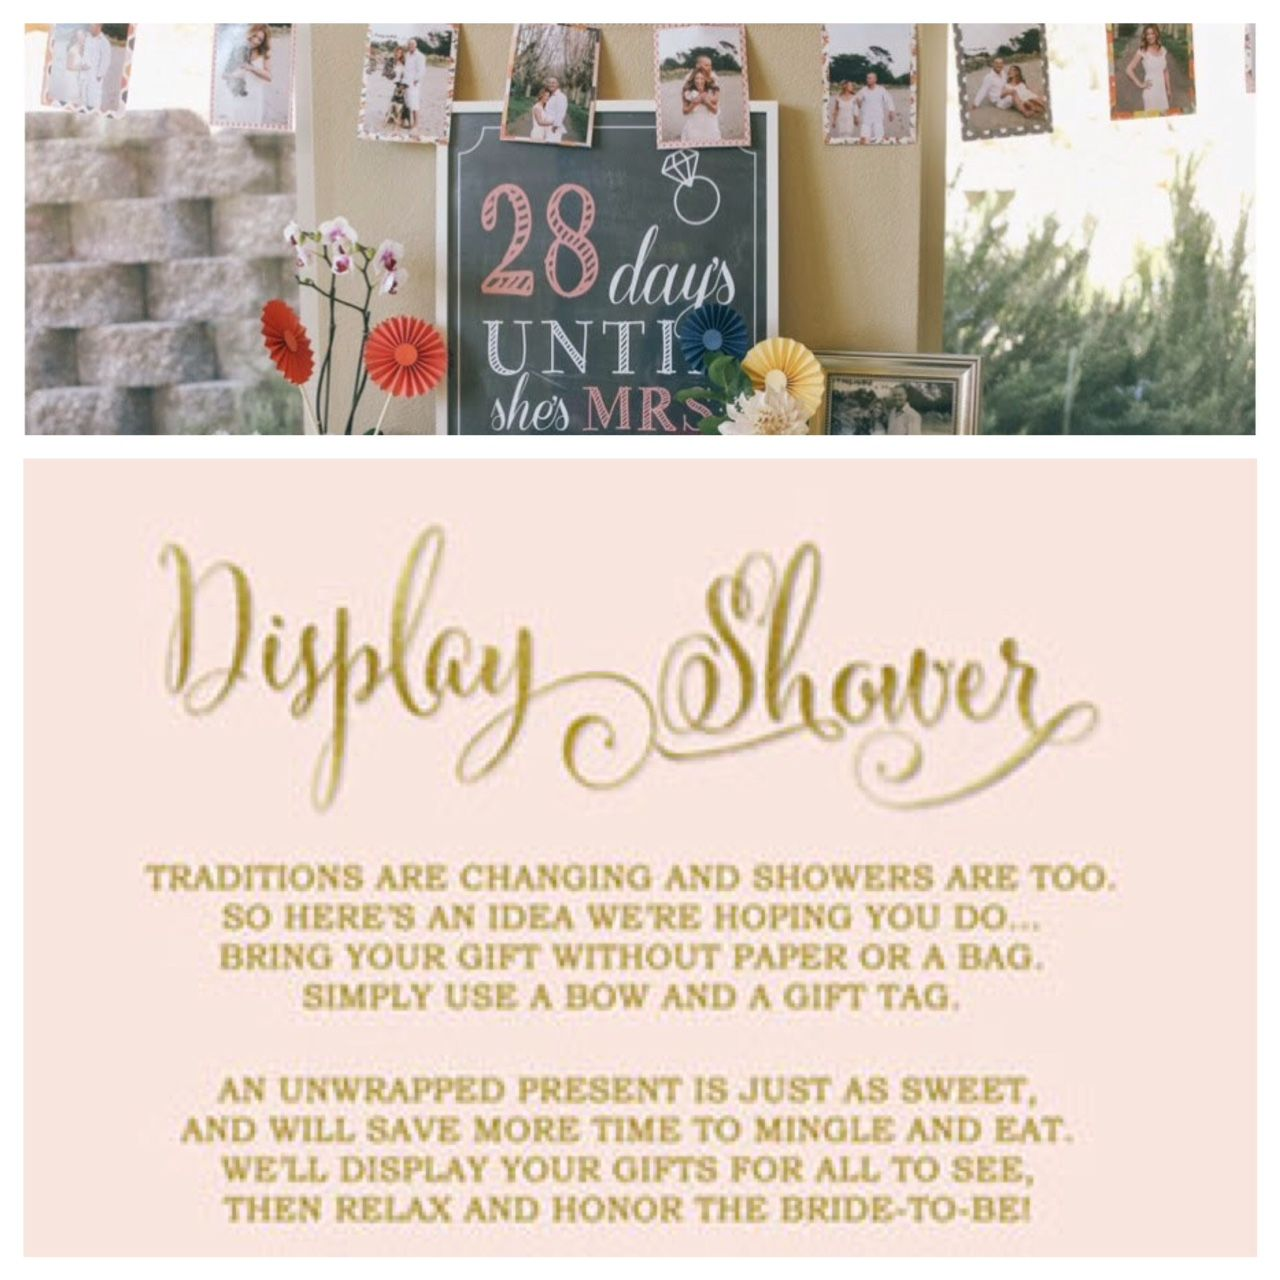 traditions are changing and showers are too so heres an idea were hoping you dobring your gift without paper or bag simply use a bow and a gift tag